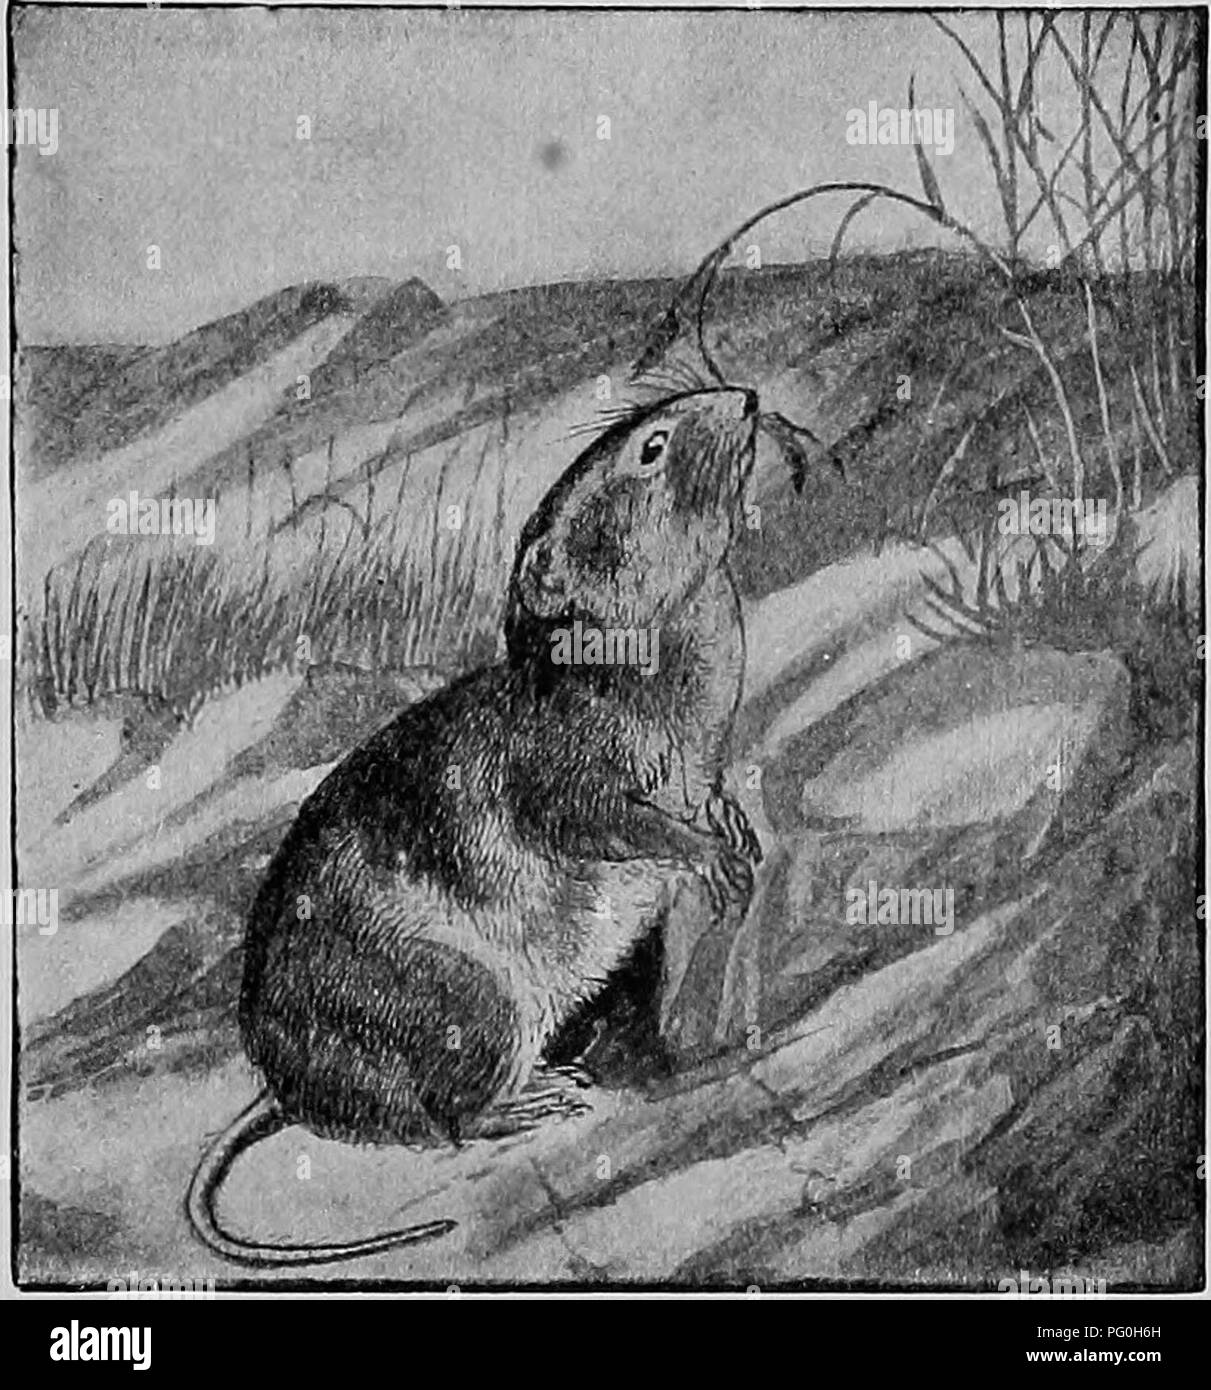 """. The American natural history; a foundation of useful knowledge of the higher animals of North America. Natural history. EXPLOITS OF A PAIR OF WOOD RATS 231 remarkable thing about them is """"their habit of entering houses and playing practical jokes upon the inmates. A pair of Wood Rats that I knew by reputation at Oak Lodge, in Florida, first carried a lot of watermelon seeds from the. NORTHWESTERN VOLE. ground floor up-stairs, and hid them under a pillow. Then they took from the kitchen a tablespoonful of cucumber seeds, and placed them in the pocket of a vest which hung up-stairs on a n - Stock Image"""